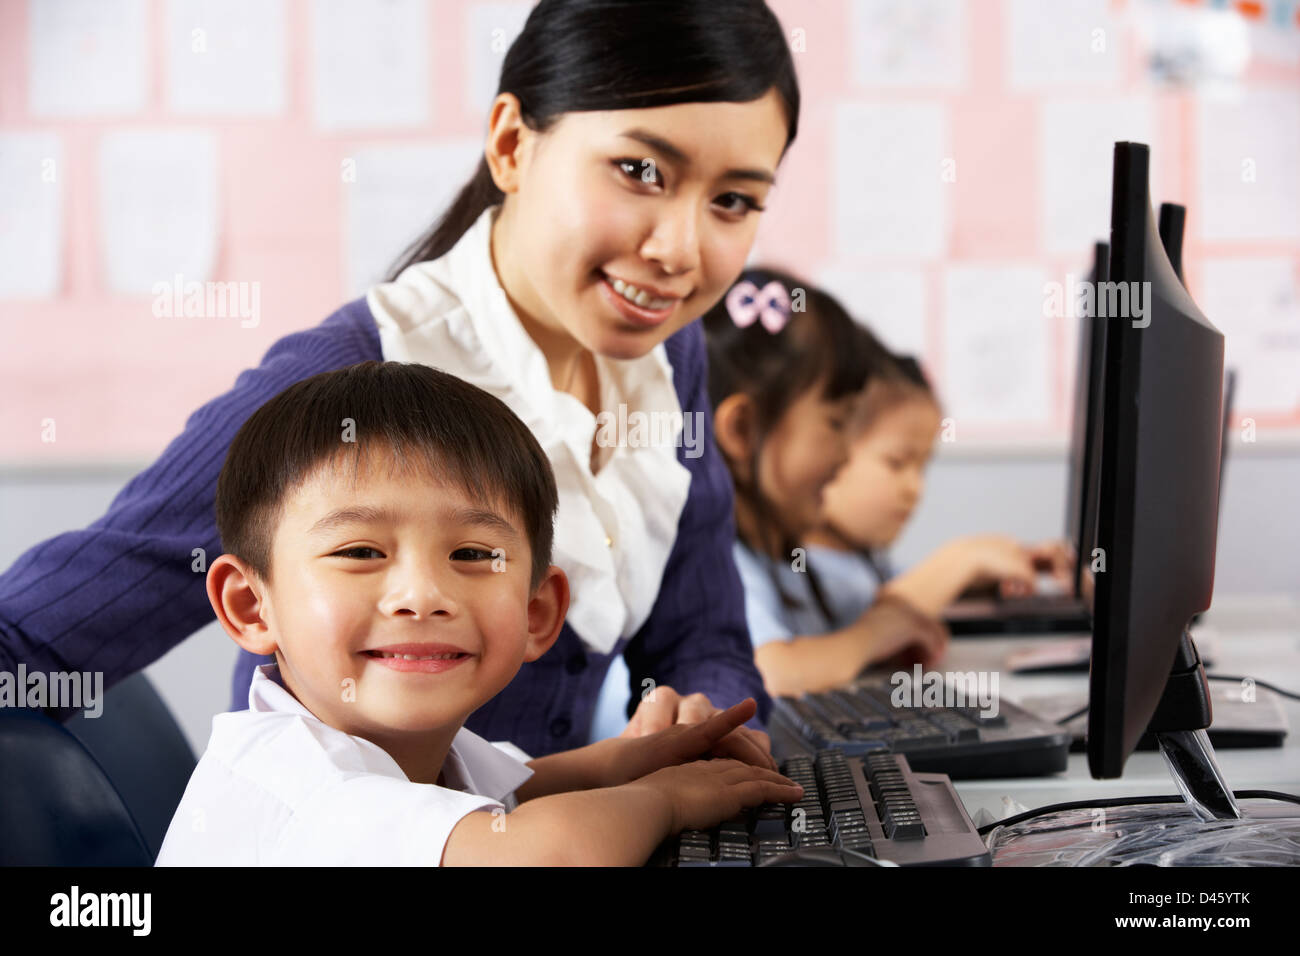 Teacher Helping Student During Computer Class In Chinese School Classroom - Stock Image